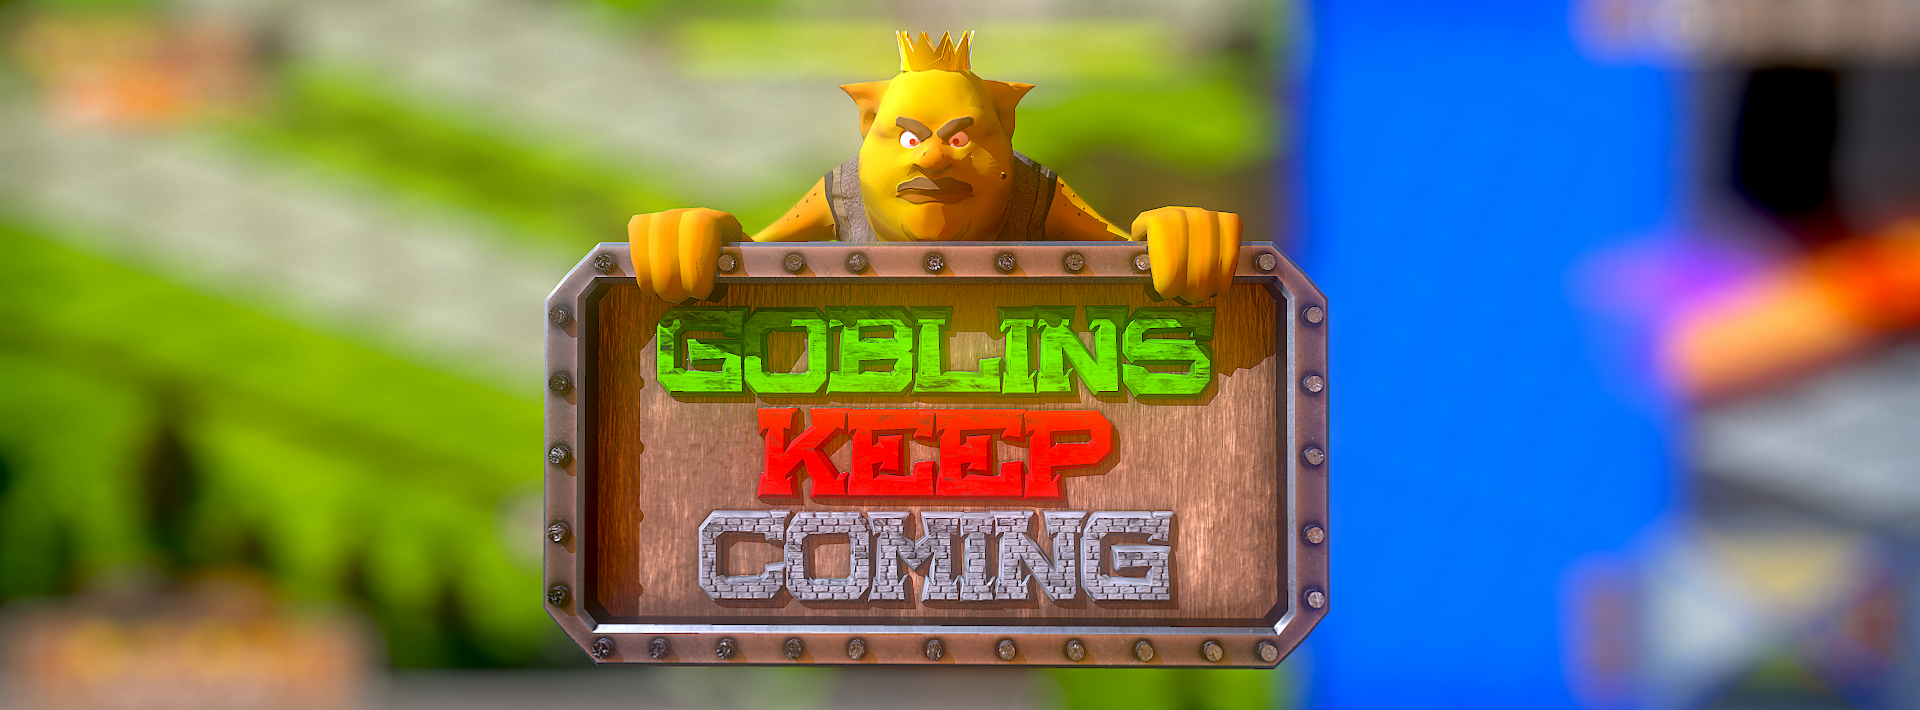 Goblins Keep Coming! - Tower Defense